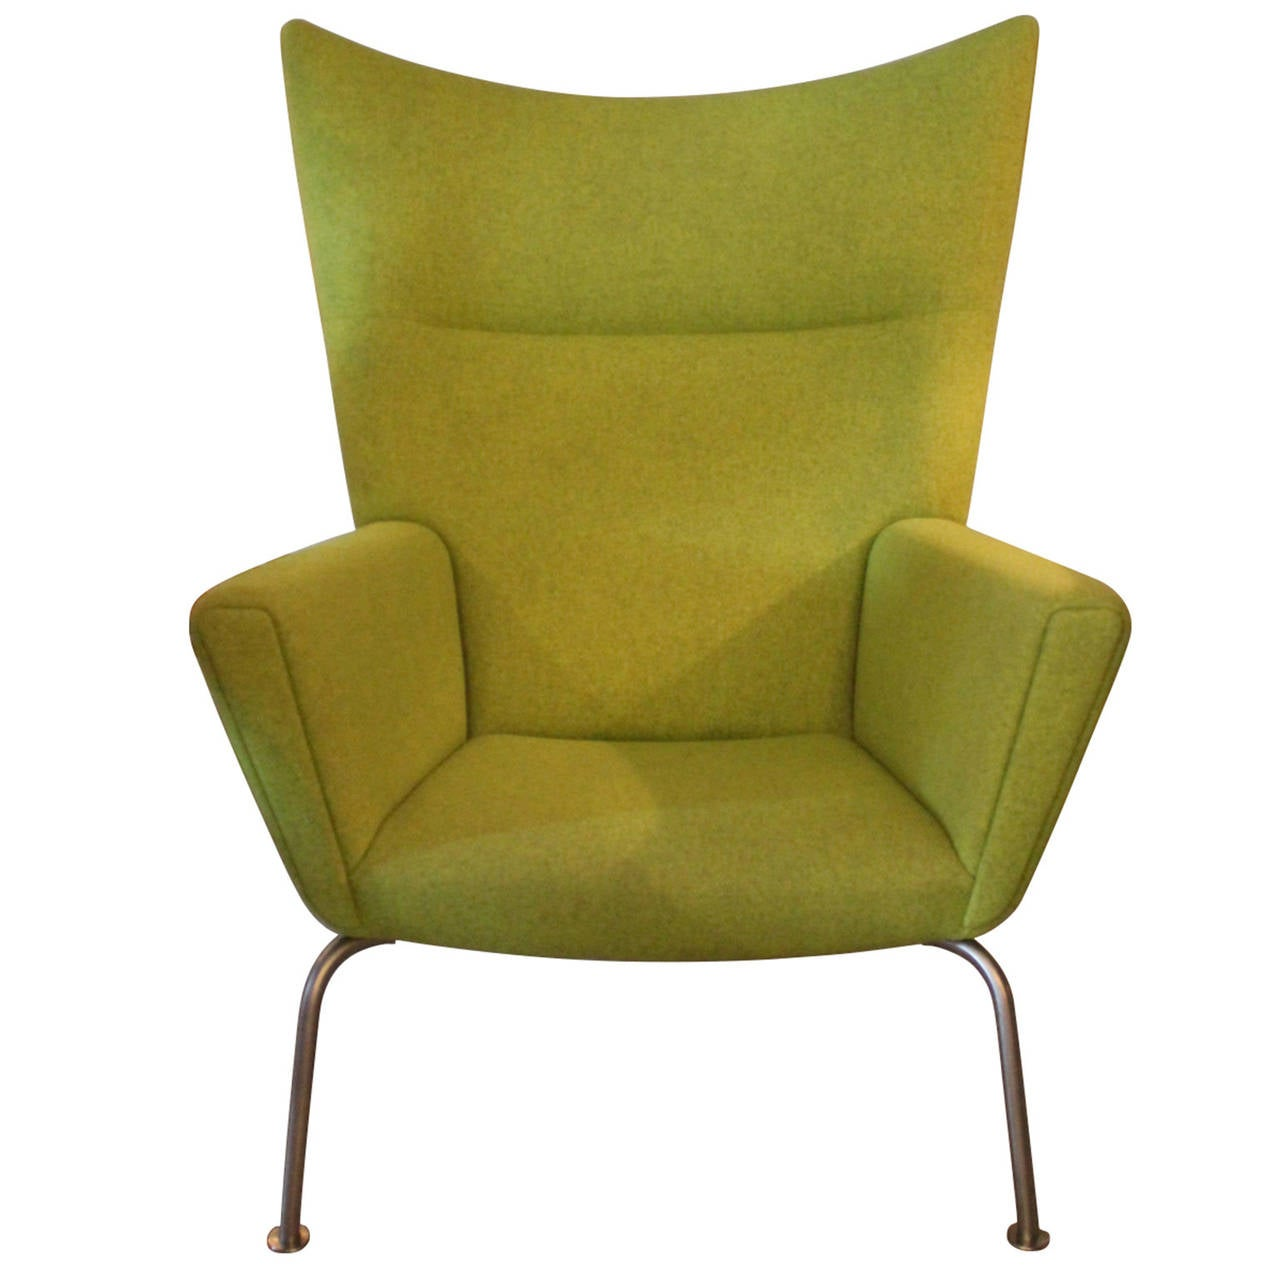 Hans j wegner chair wingchair model ch445 design 1960 for 1960s furniture designers